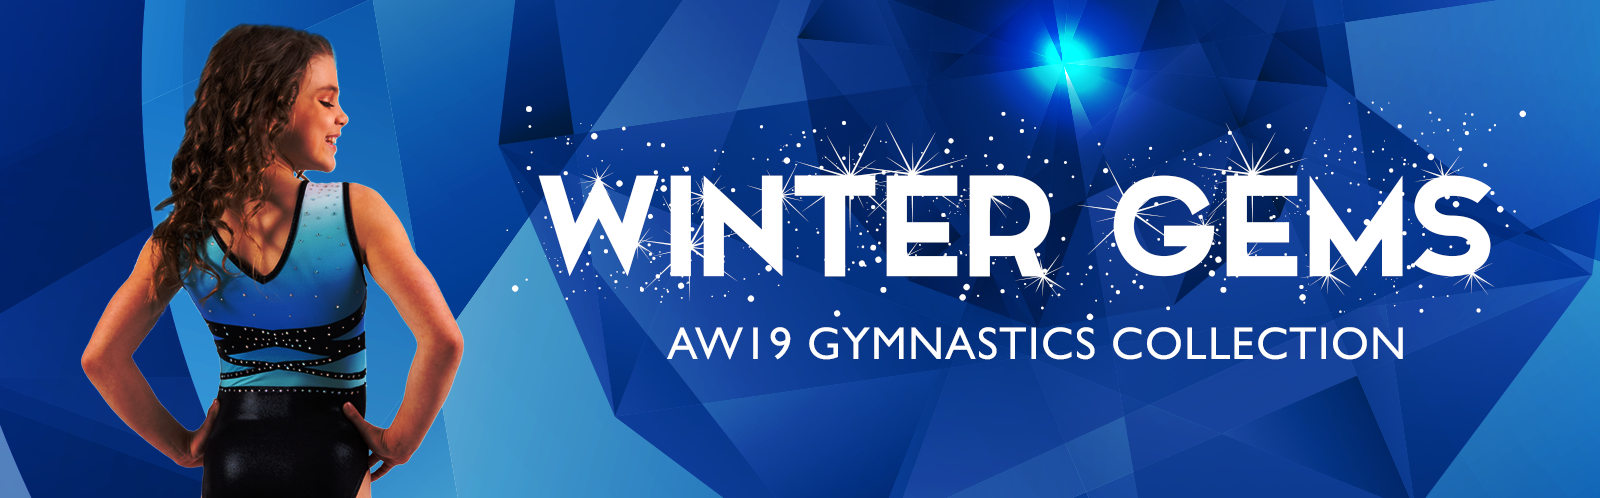 AW19-gymnastics-christmas-collection-s